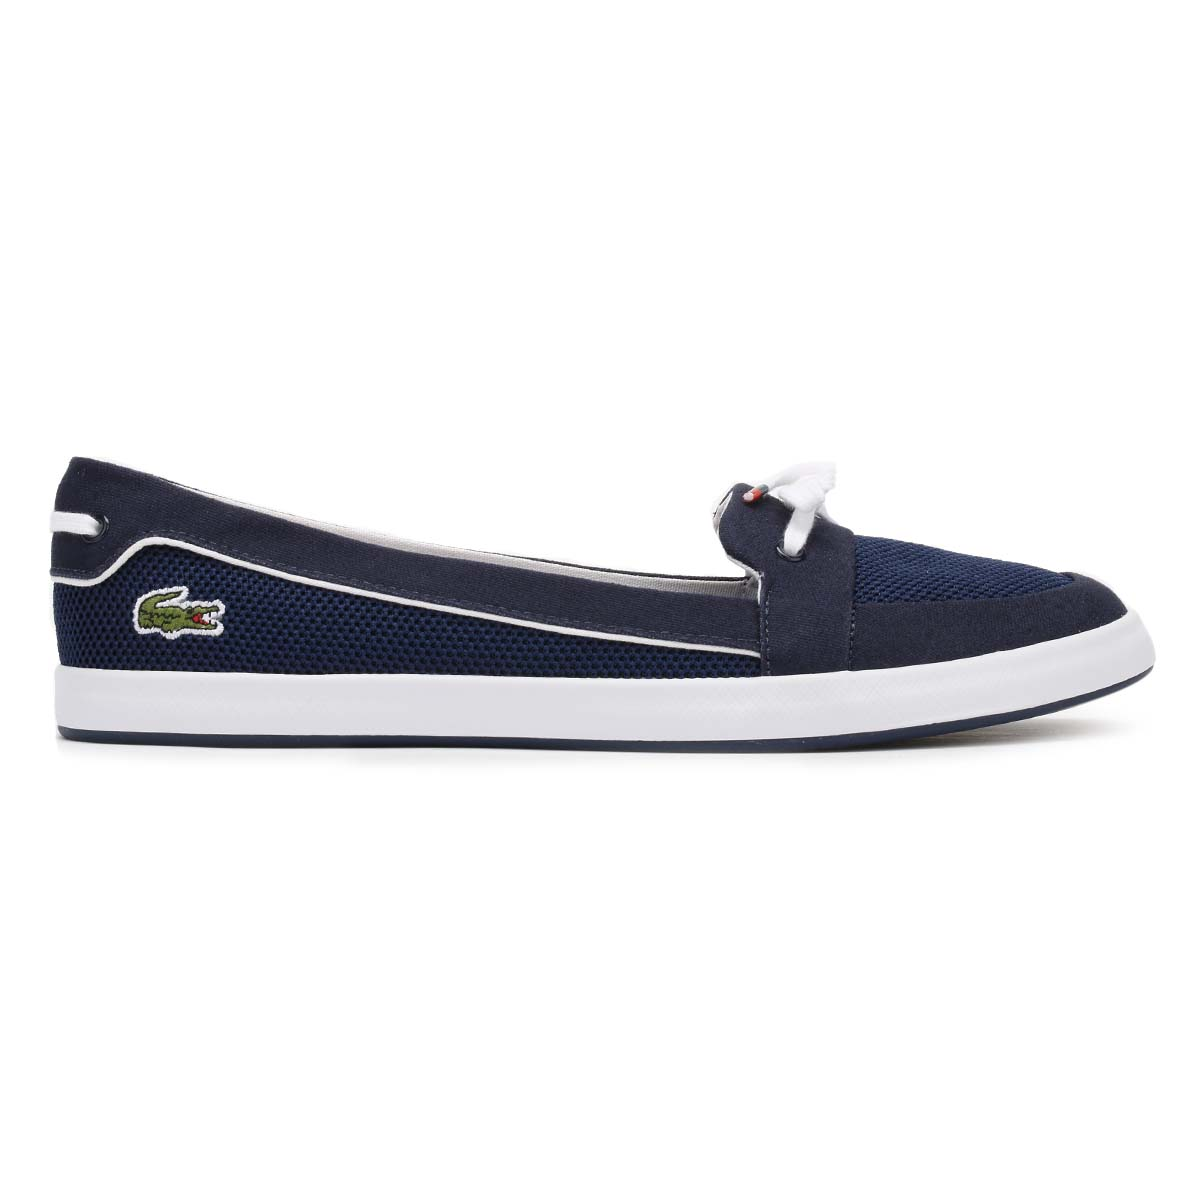 lacoste womens boat shoes navy blue lancelle 117 1 caw